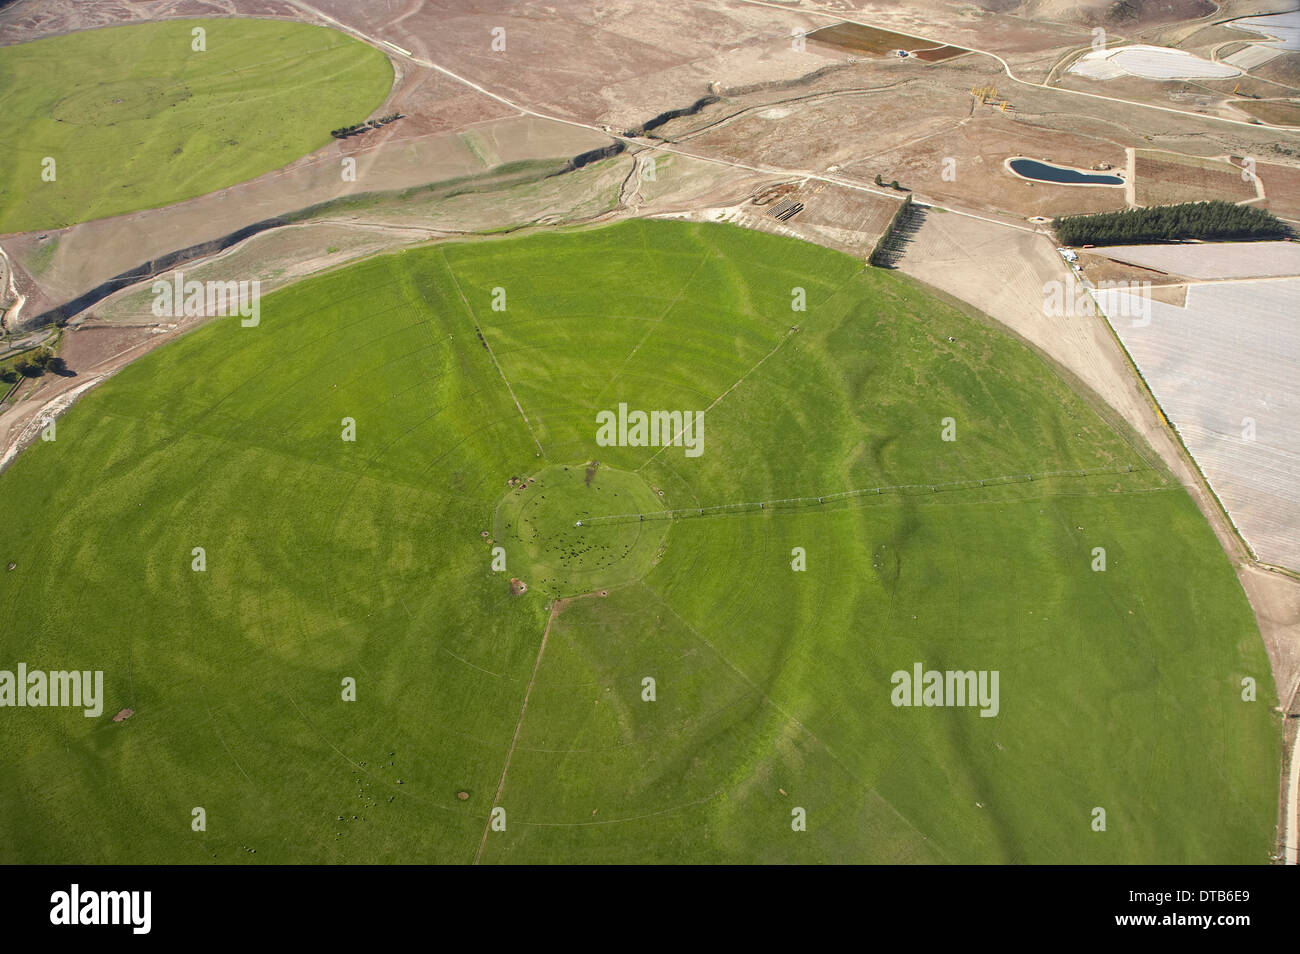 Giant Rotary Irrigation Scheme, Bendigo, Central Otago, South Island, New Zealand - aerial - Stock Image